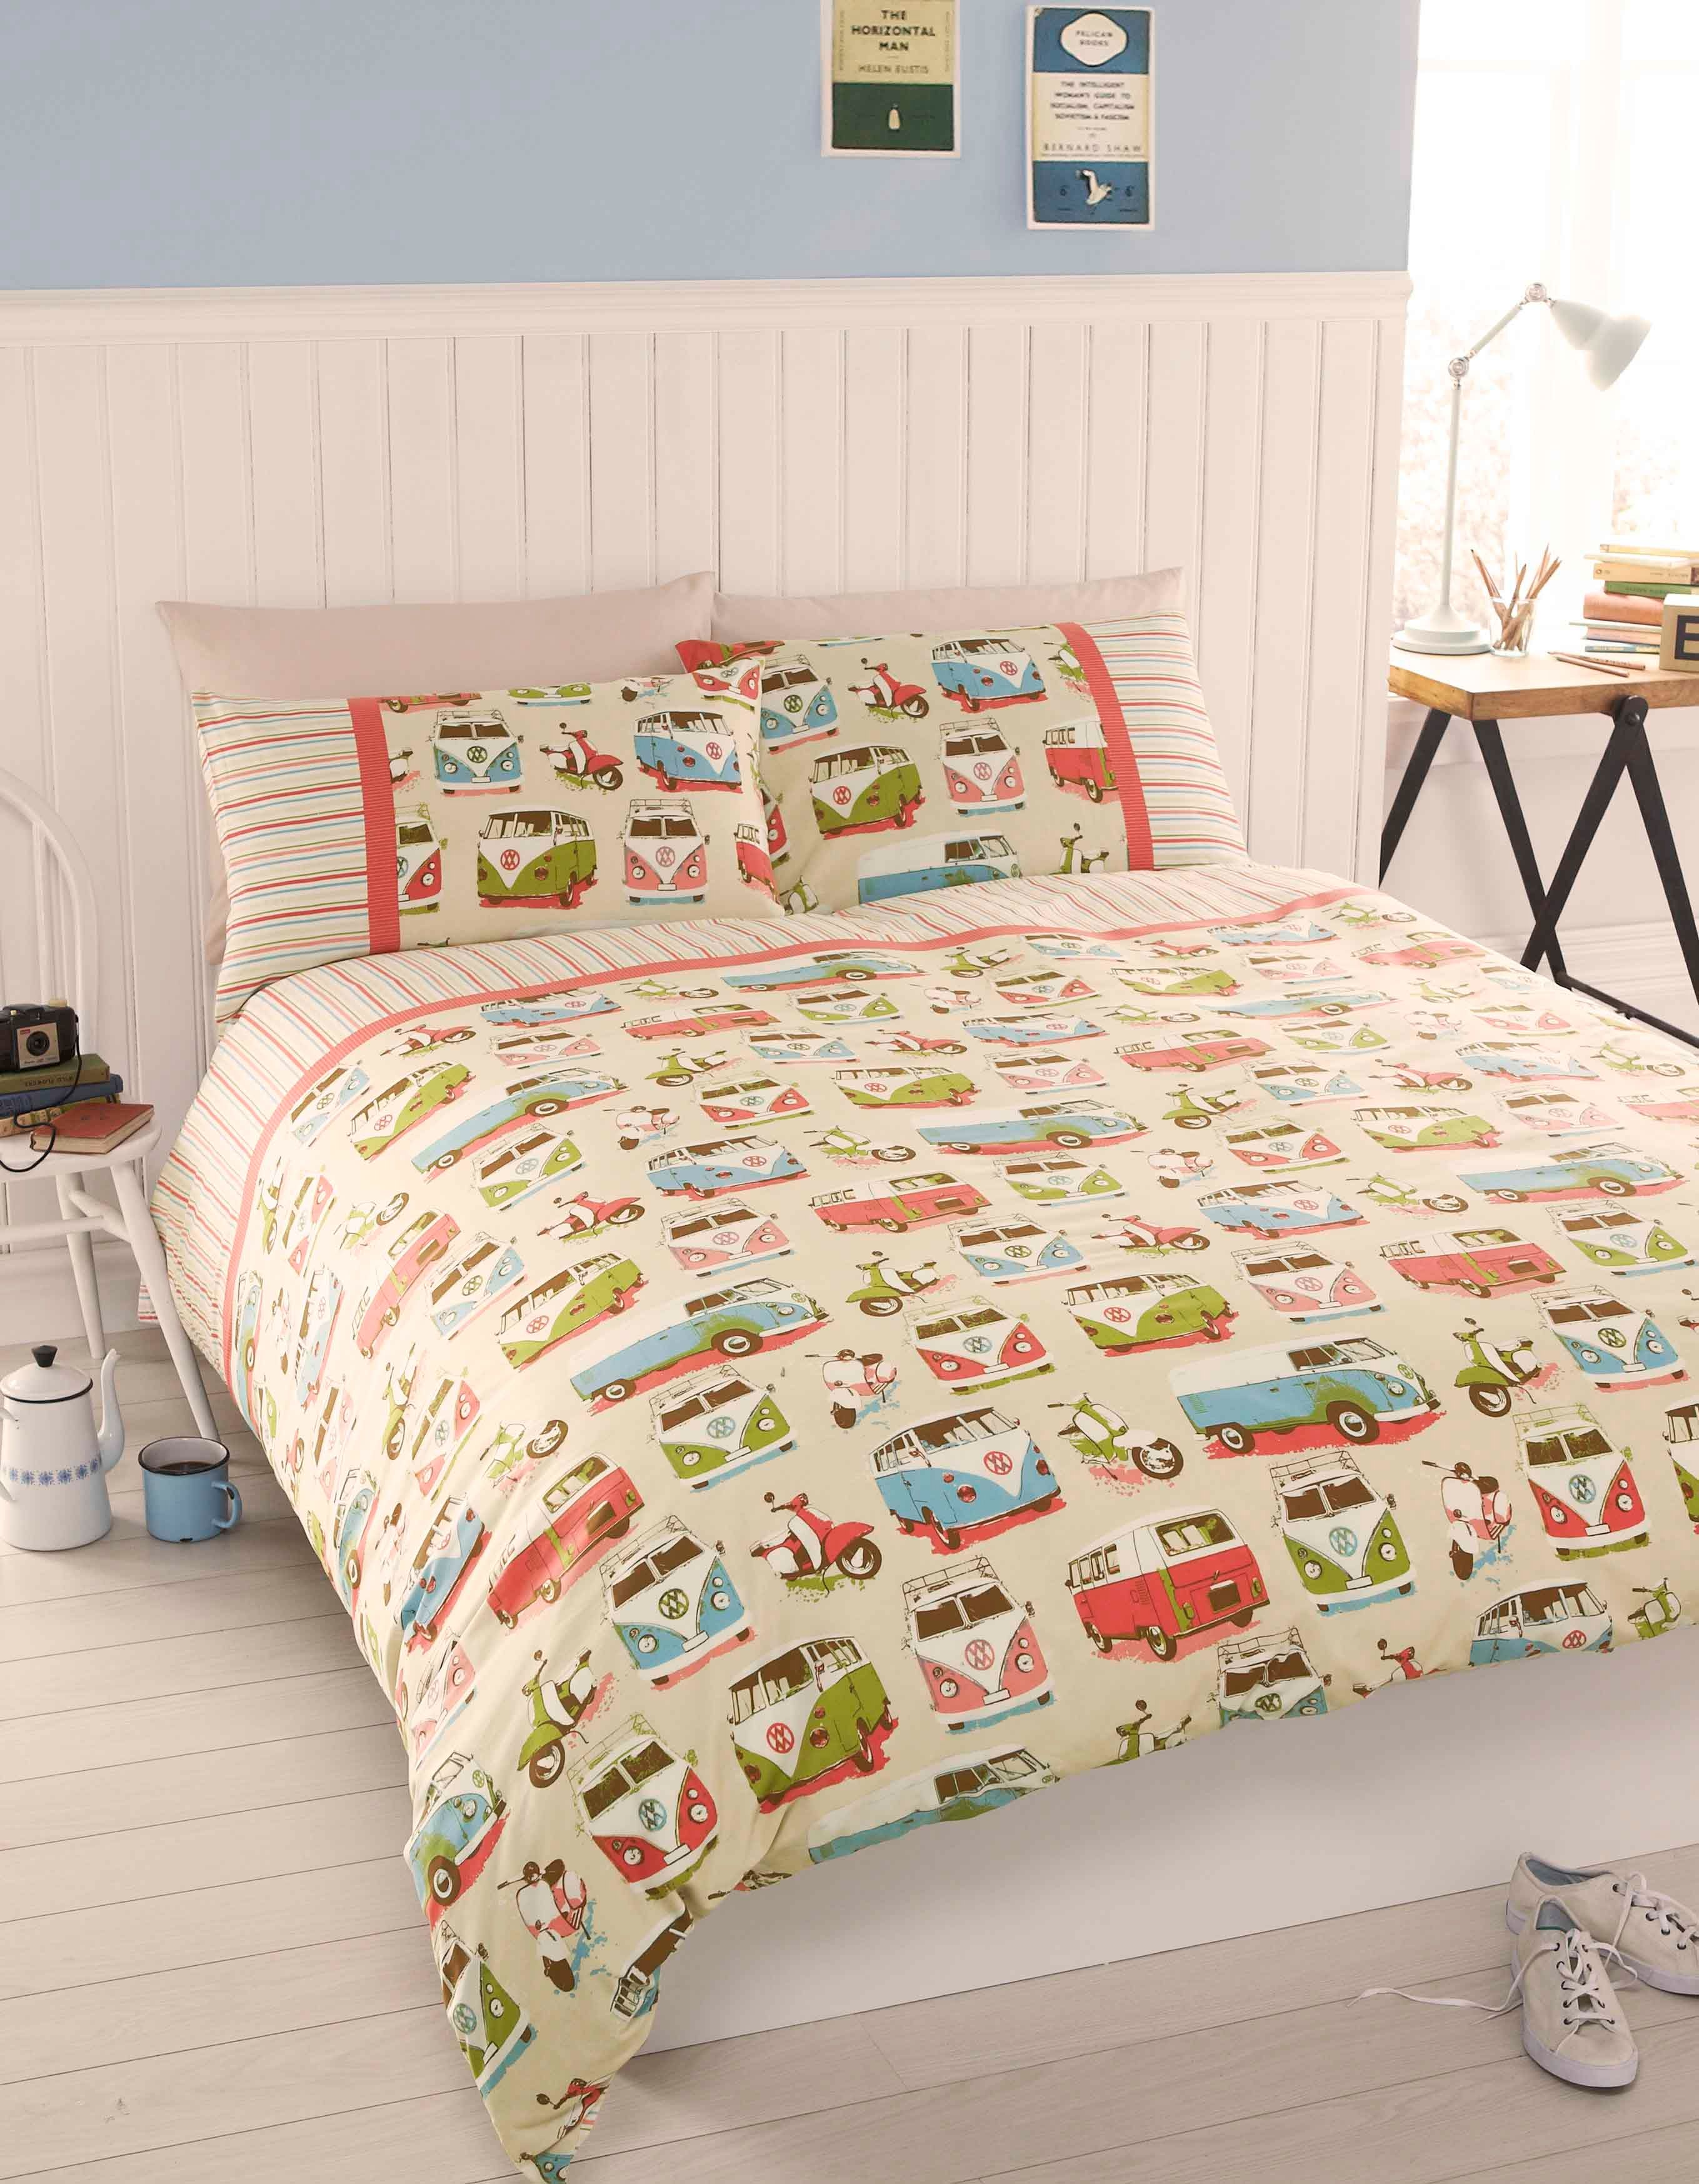 Camper van king duvet set